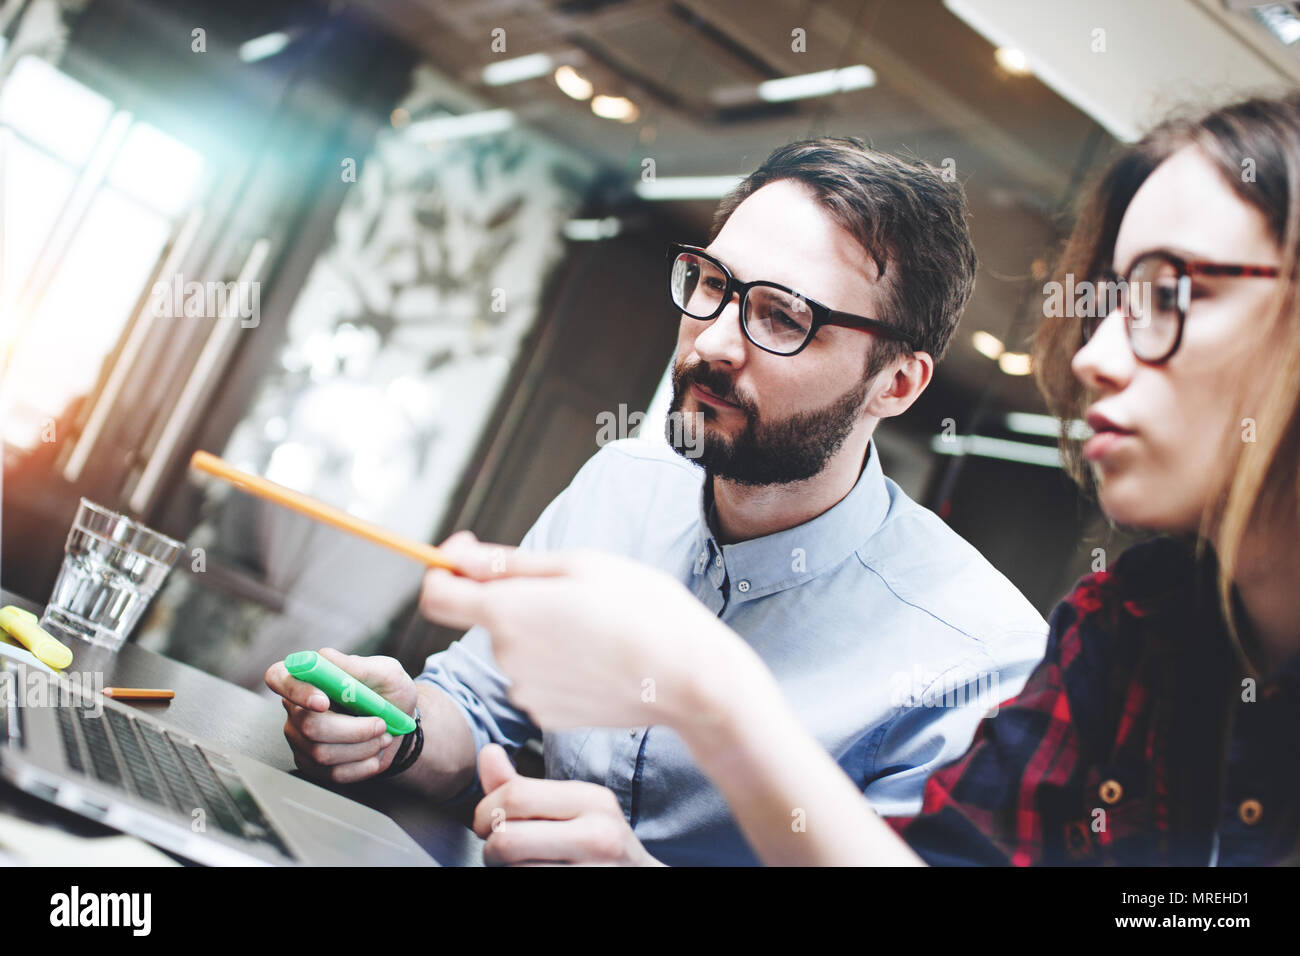 Team of businessman working on a new concept behind a modern laptop in open space office. Blurred background. Brainstorming a new startup - Stock Image